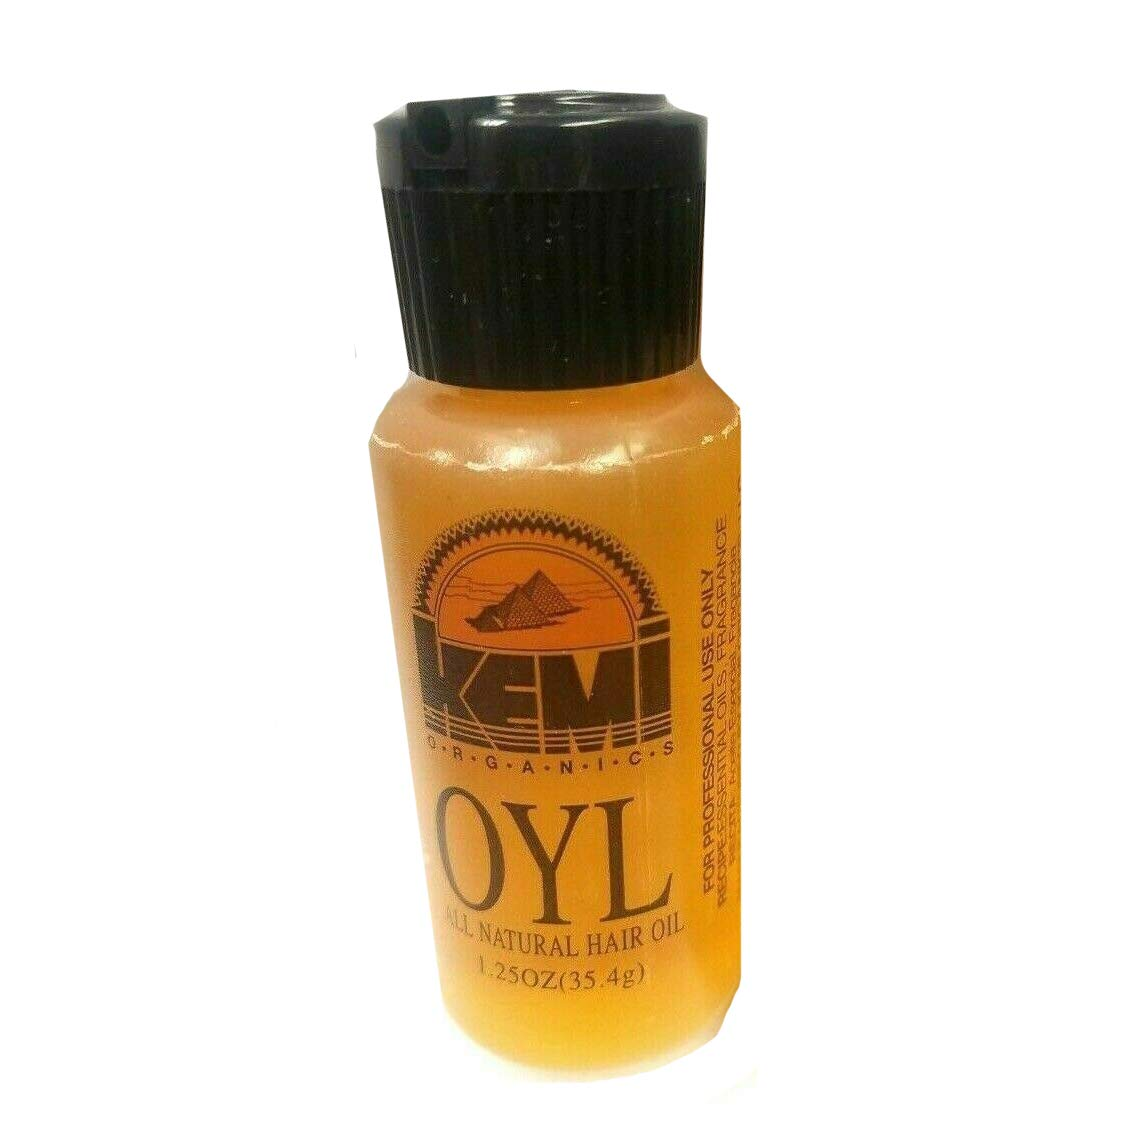 Kemi OYL All Natural Hair Oil 1.25 Oz,Pack of 24